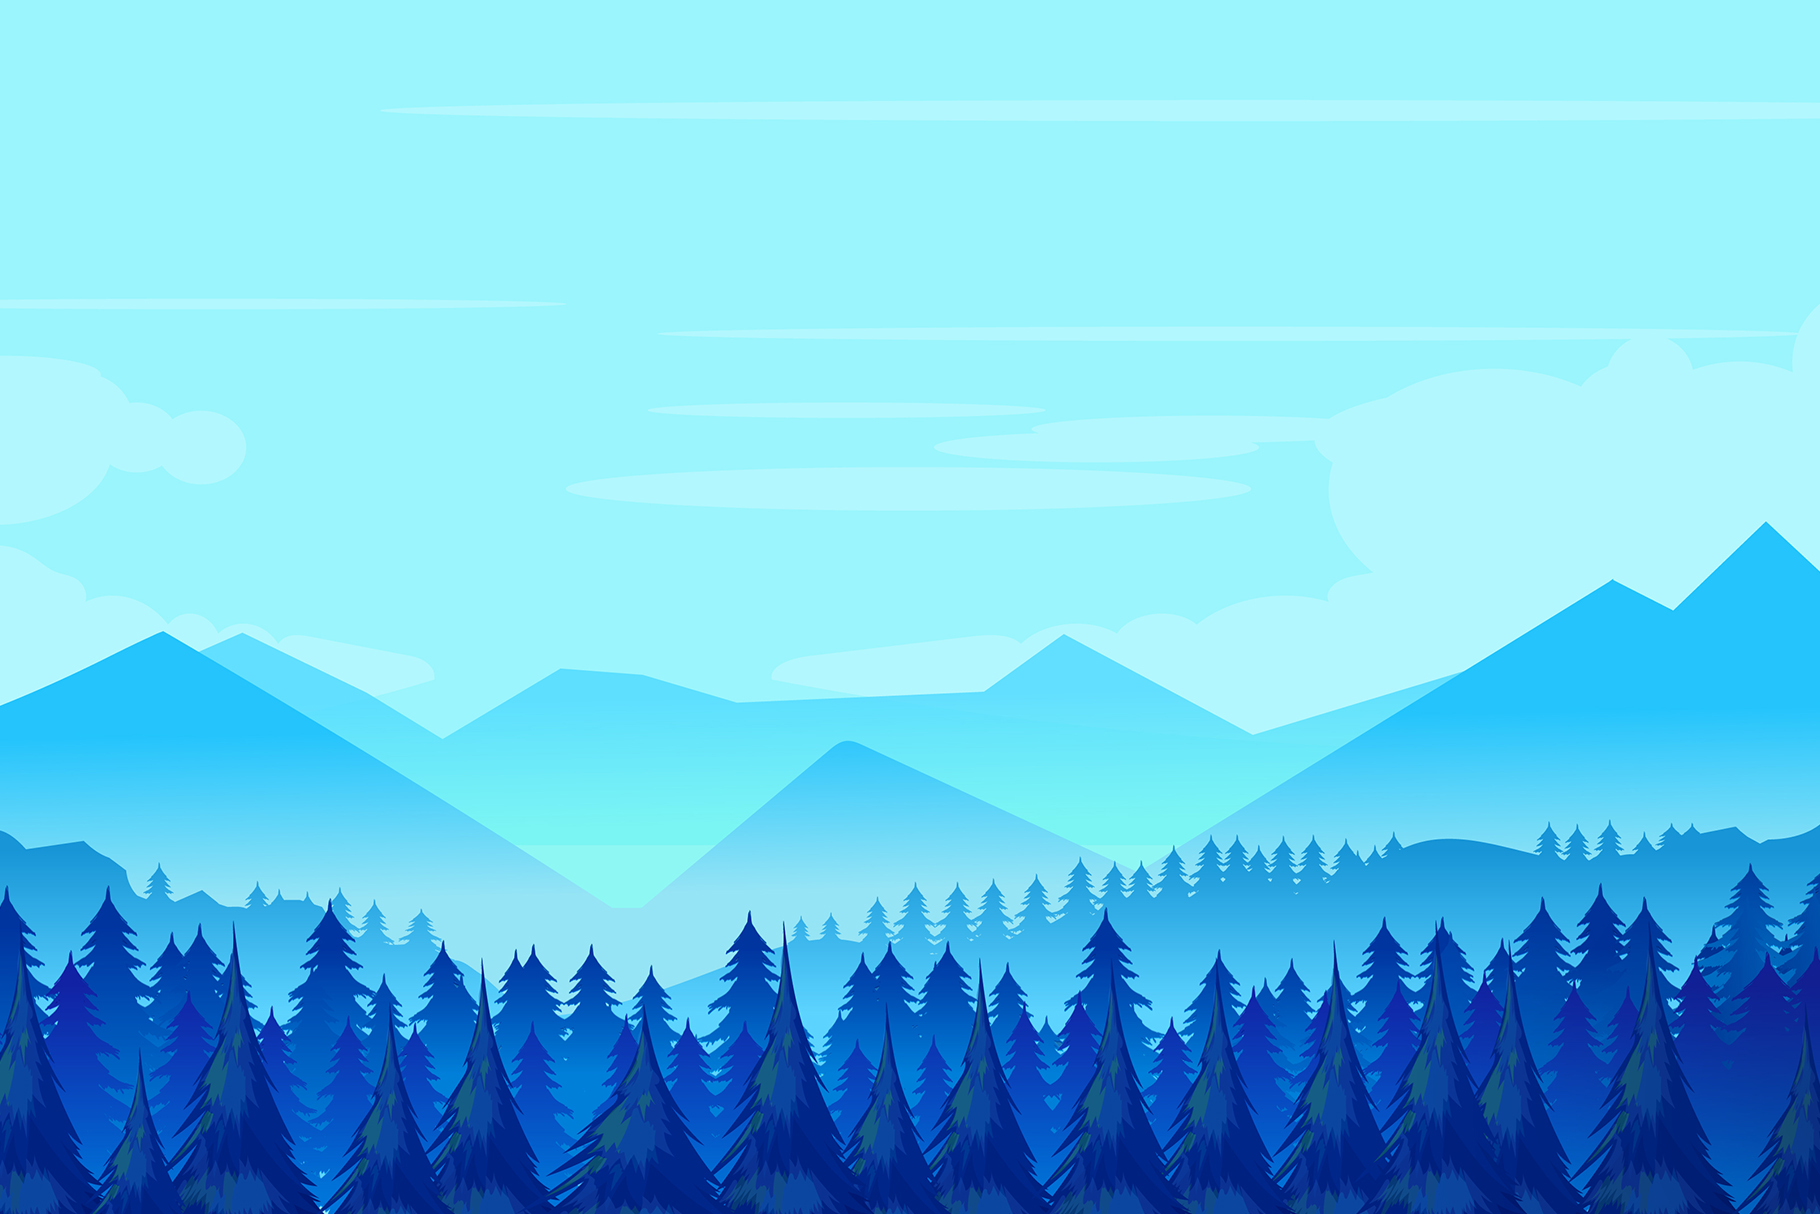 Winter mountains landscape with pine forest on foreground example image 1